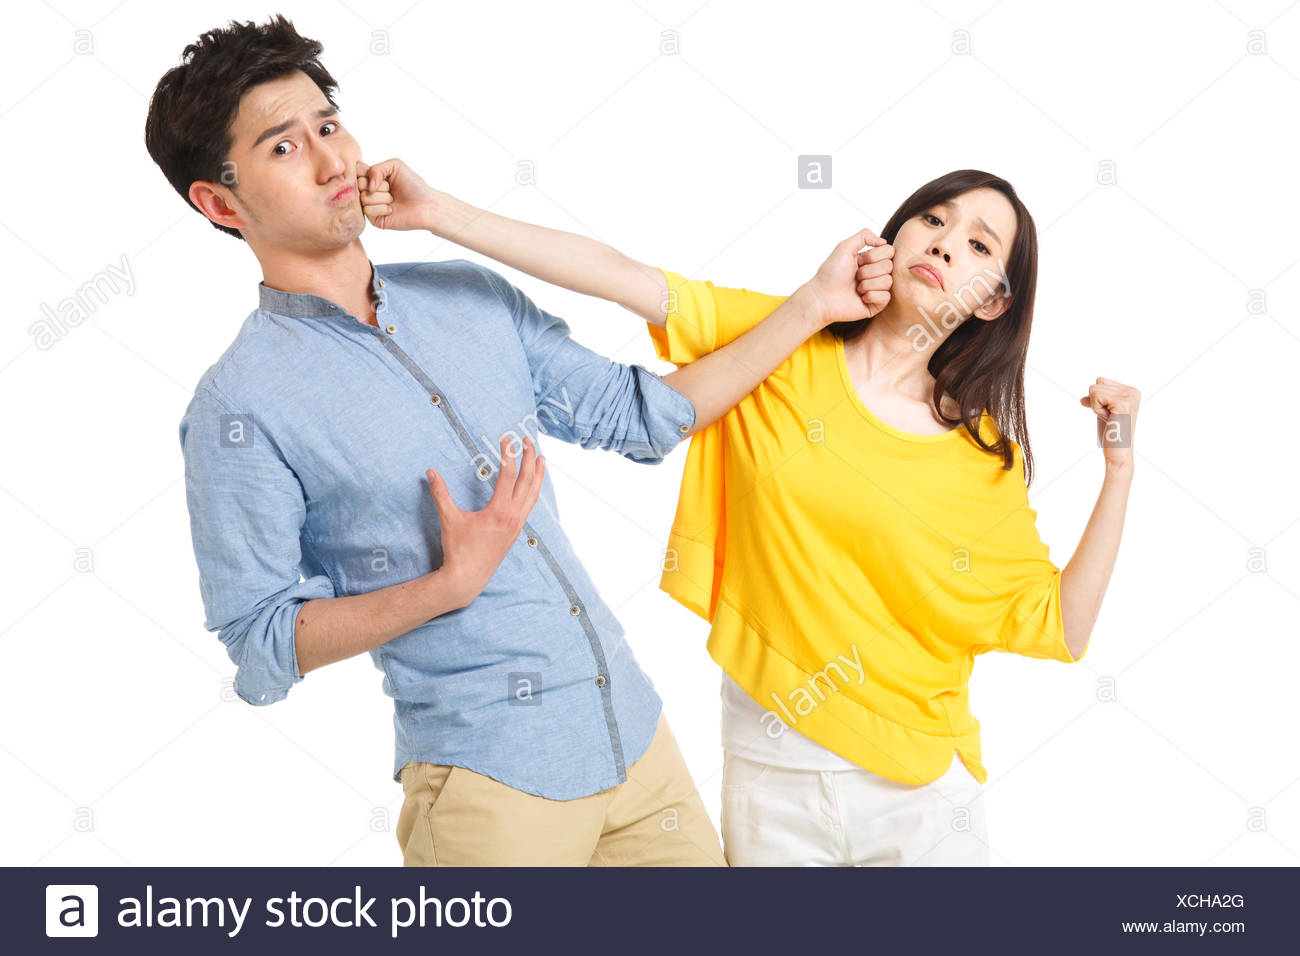 Portrait of young man and young woman - Stock Image